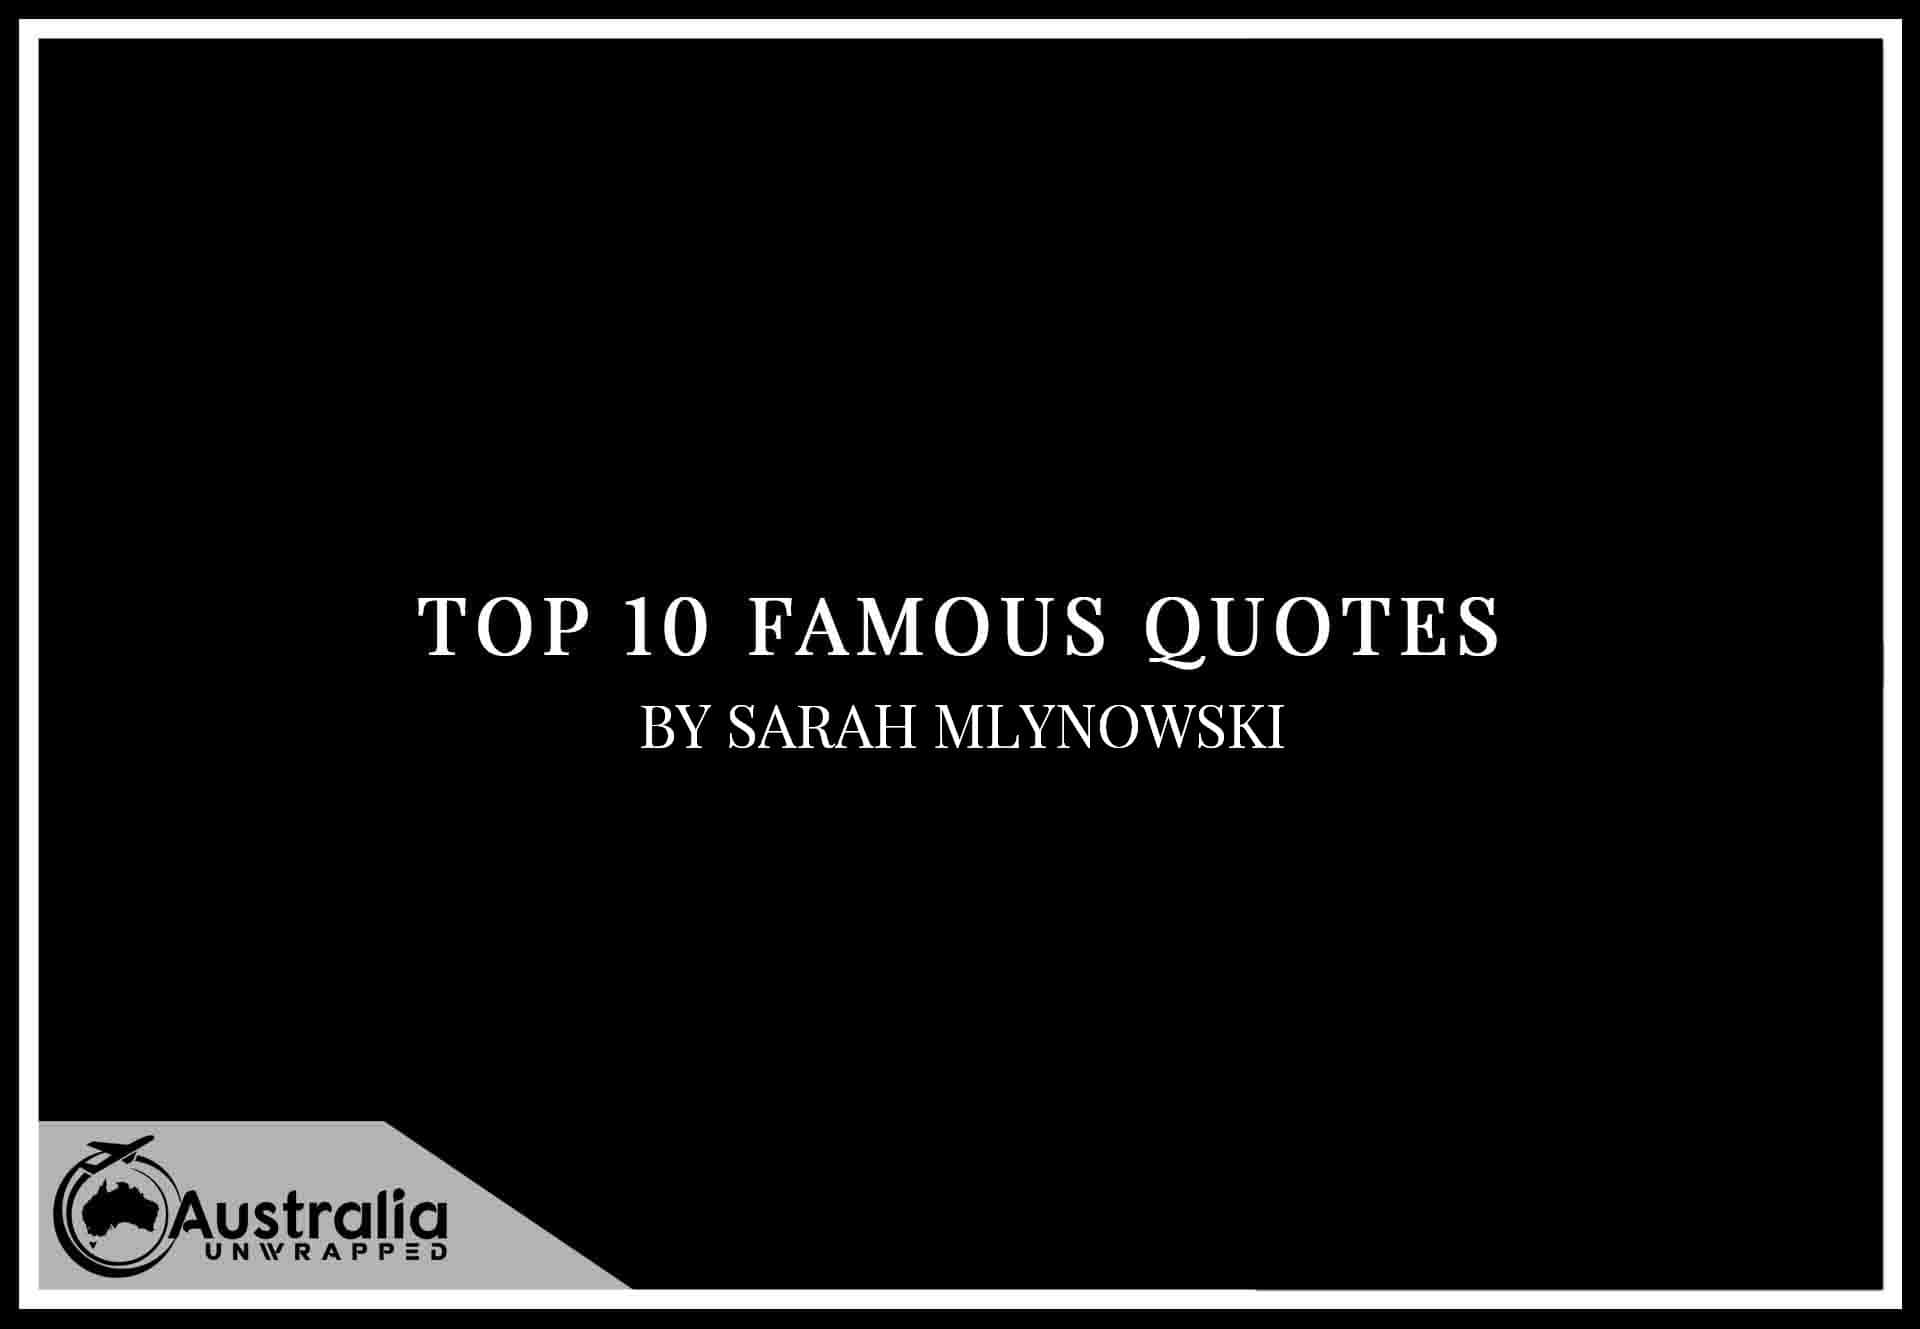 Top 10 Famous Quotes by Author Sarah Mlynowski